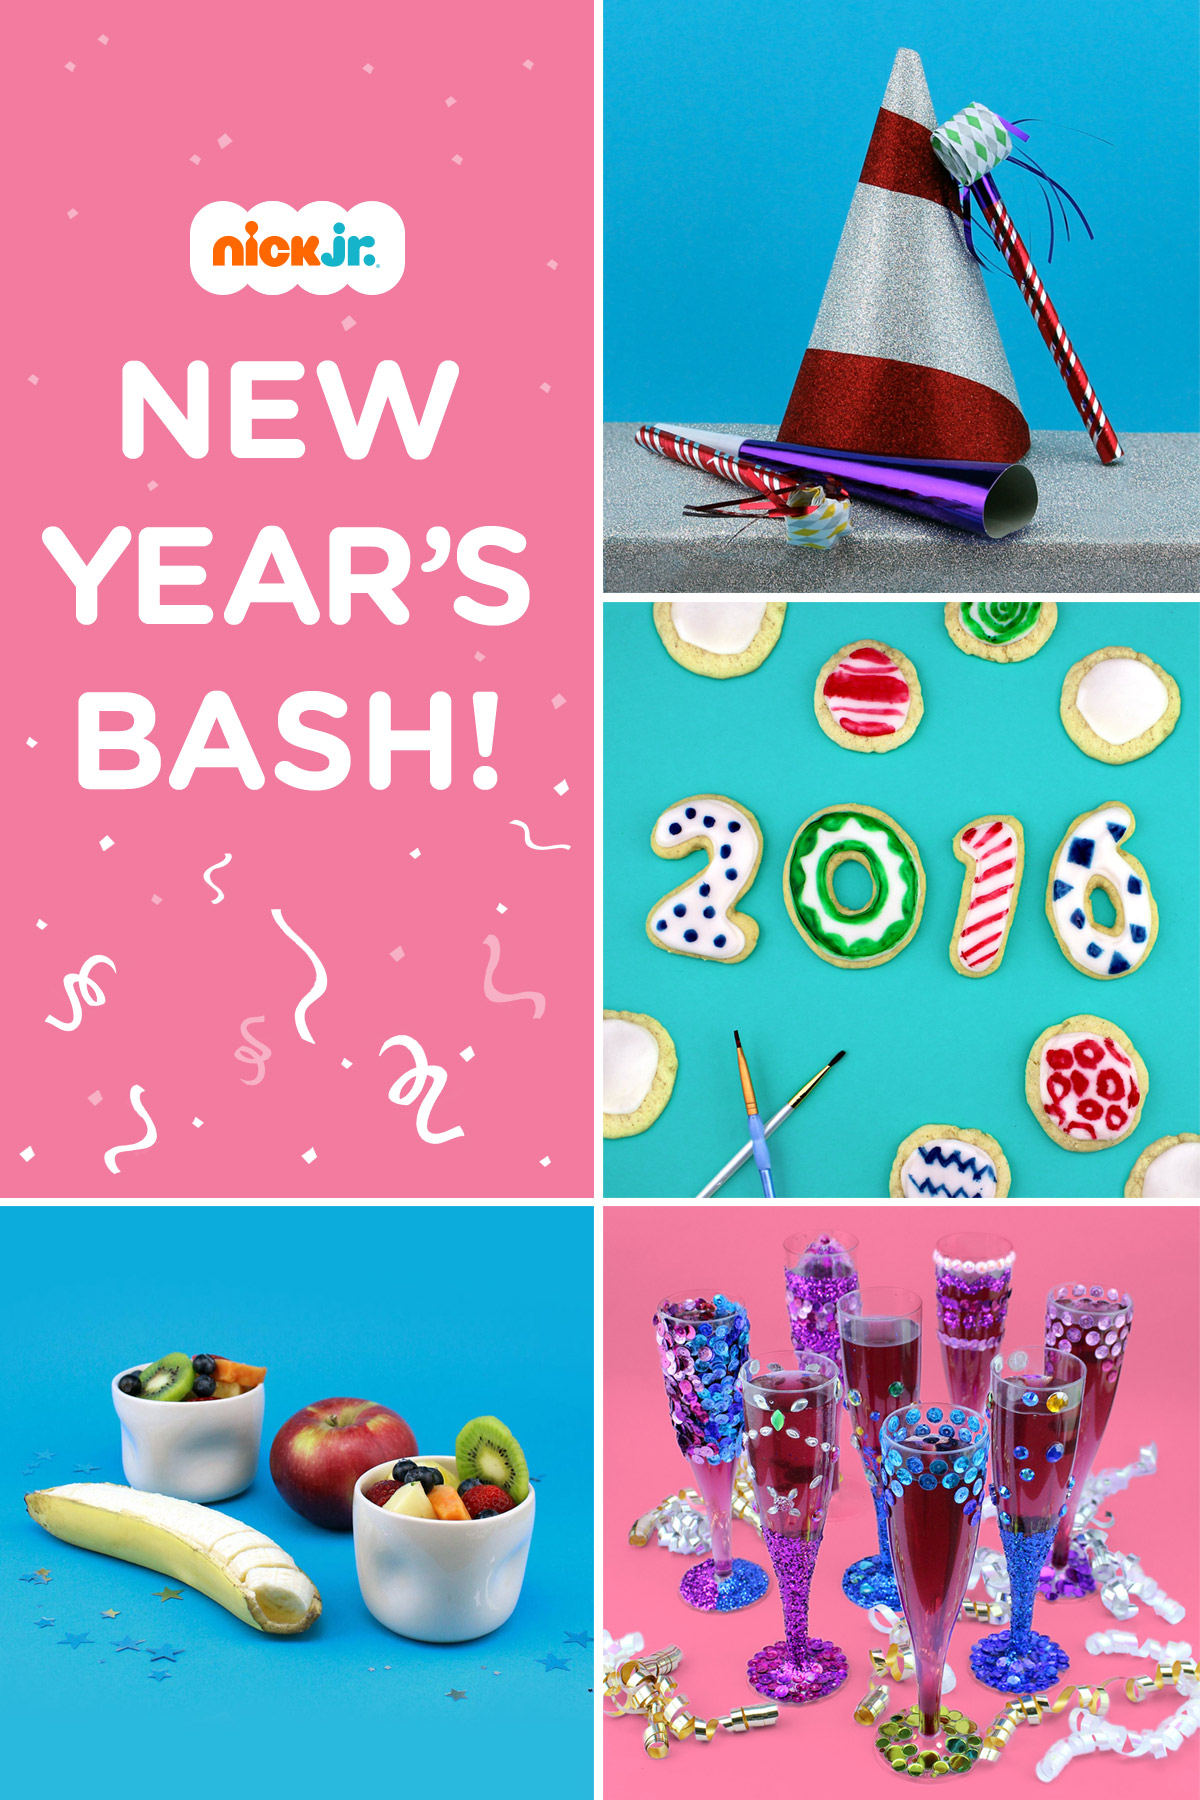 Nick Jr. New Year's Bash